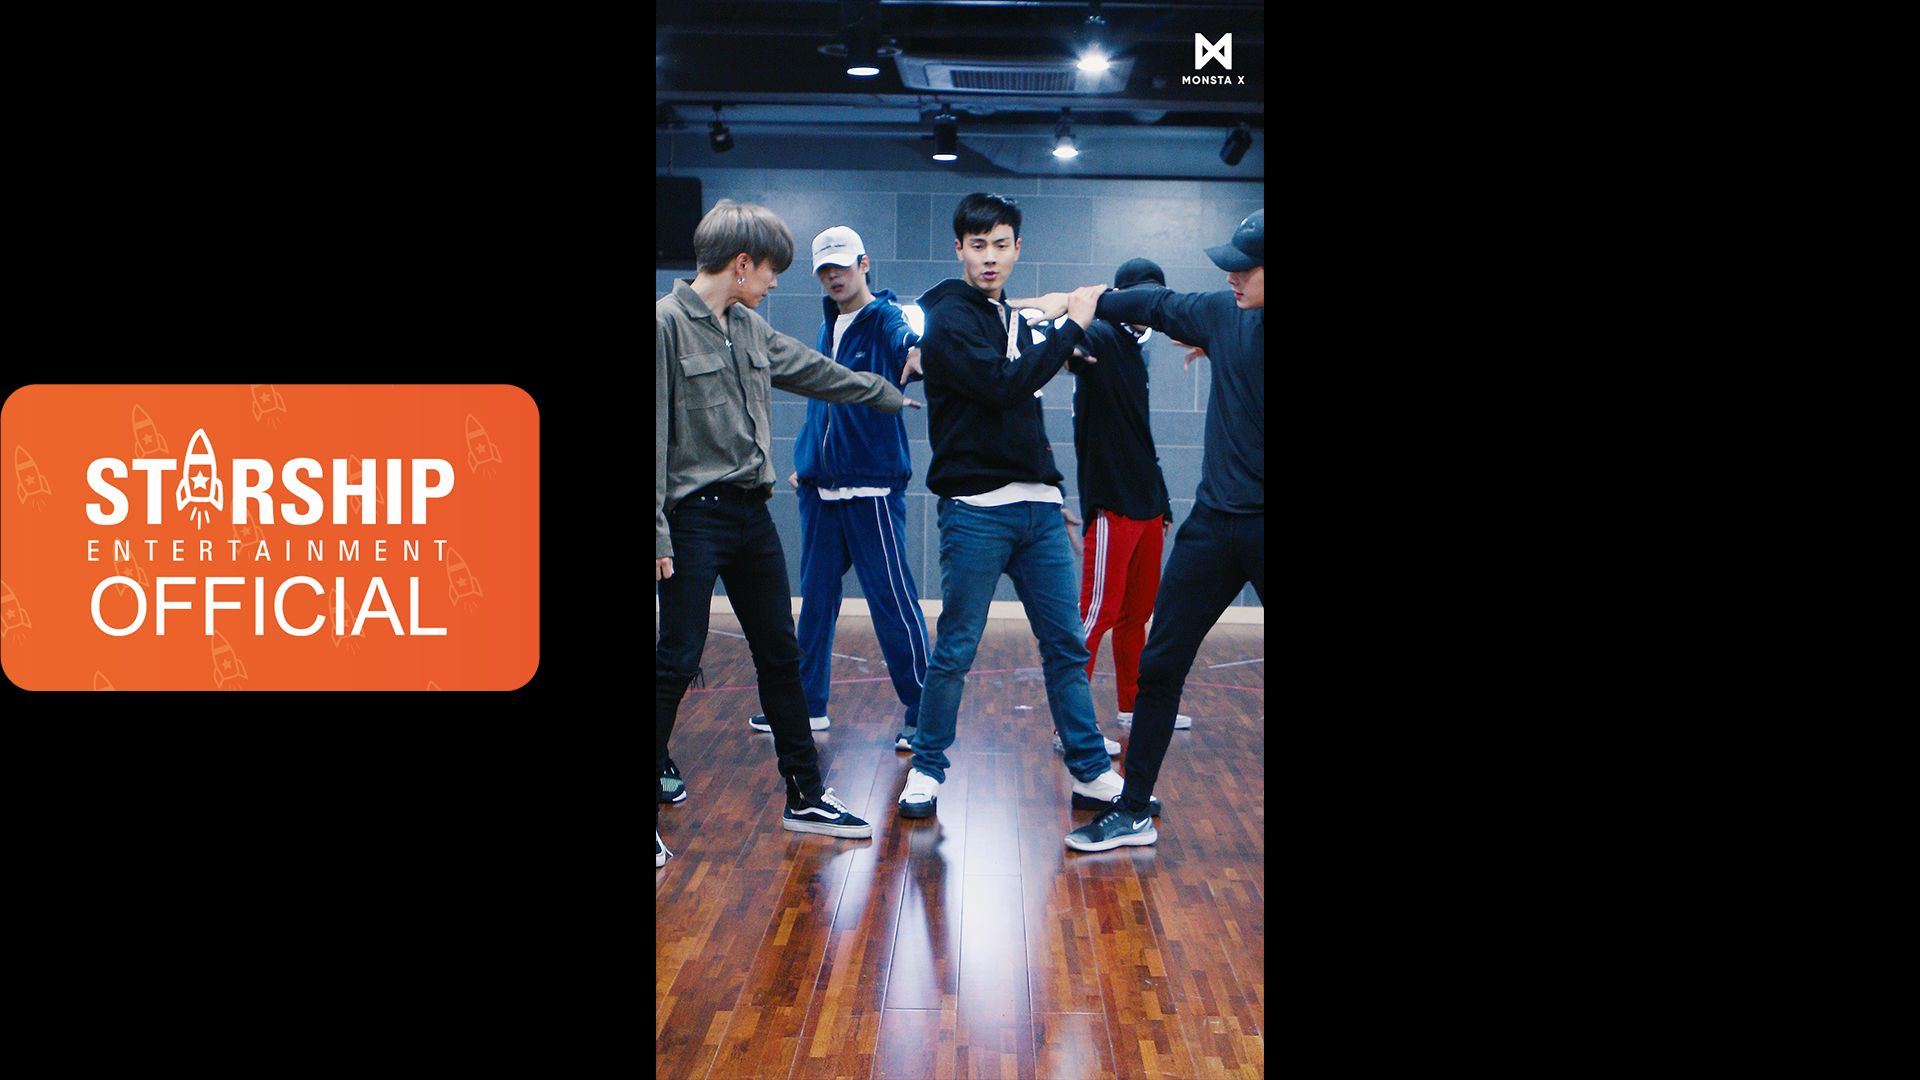 [SHOWNU][Dance Practice] 몬스타엑스 (MONSTA X) - 'DRAMARAMA' Vertical Video